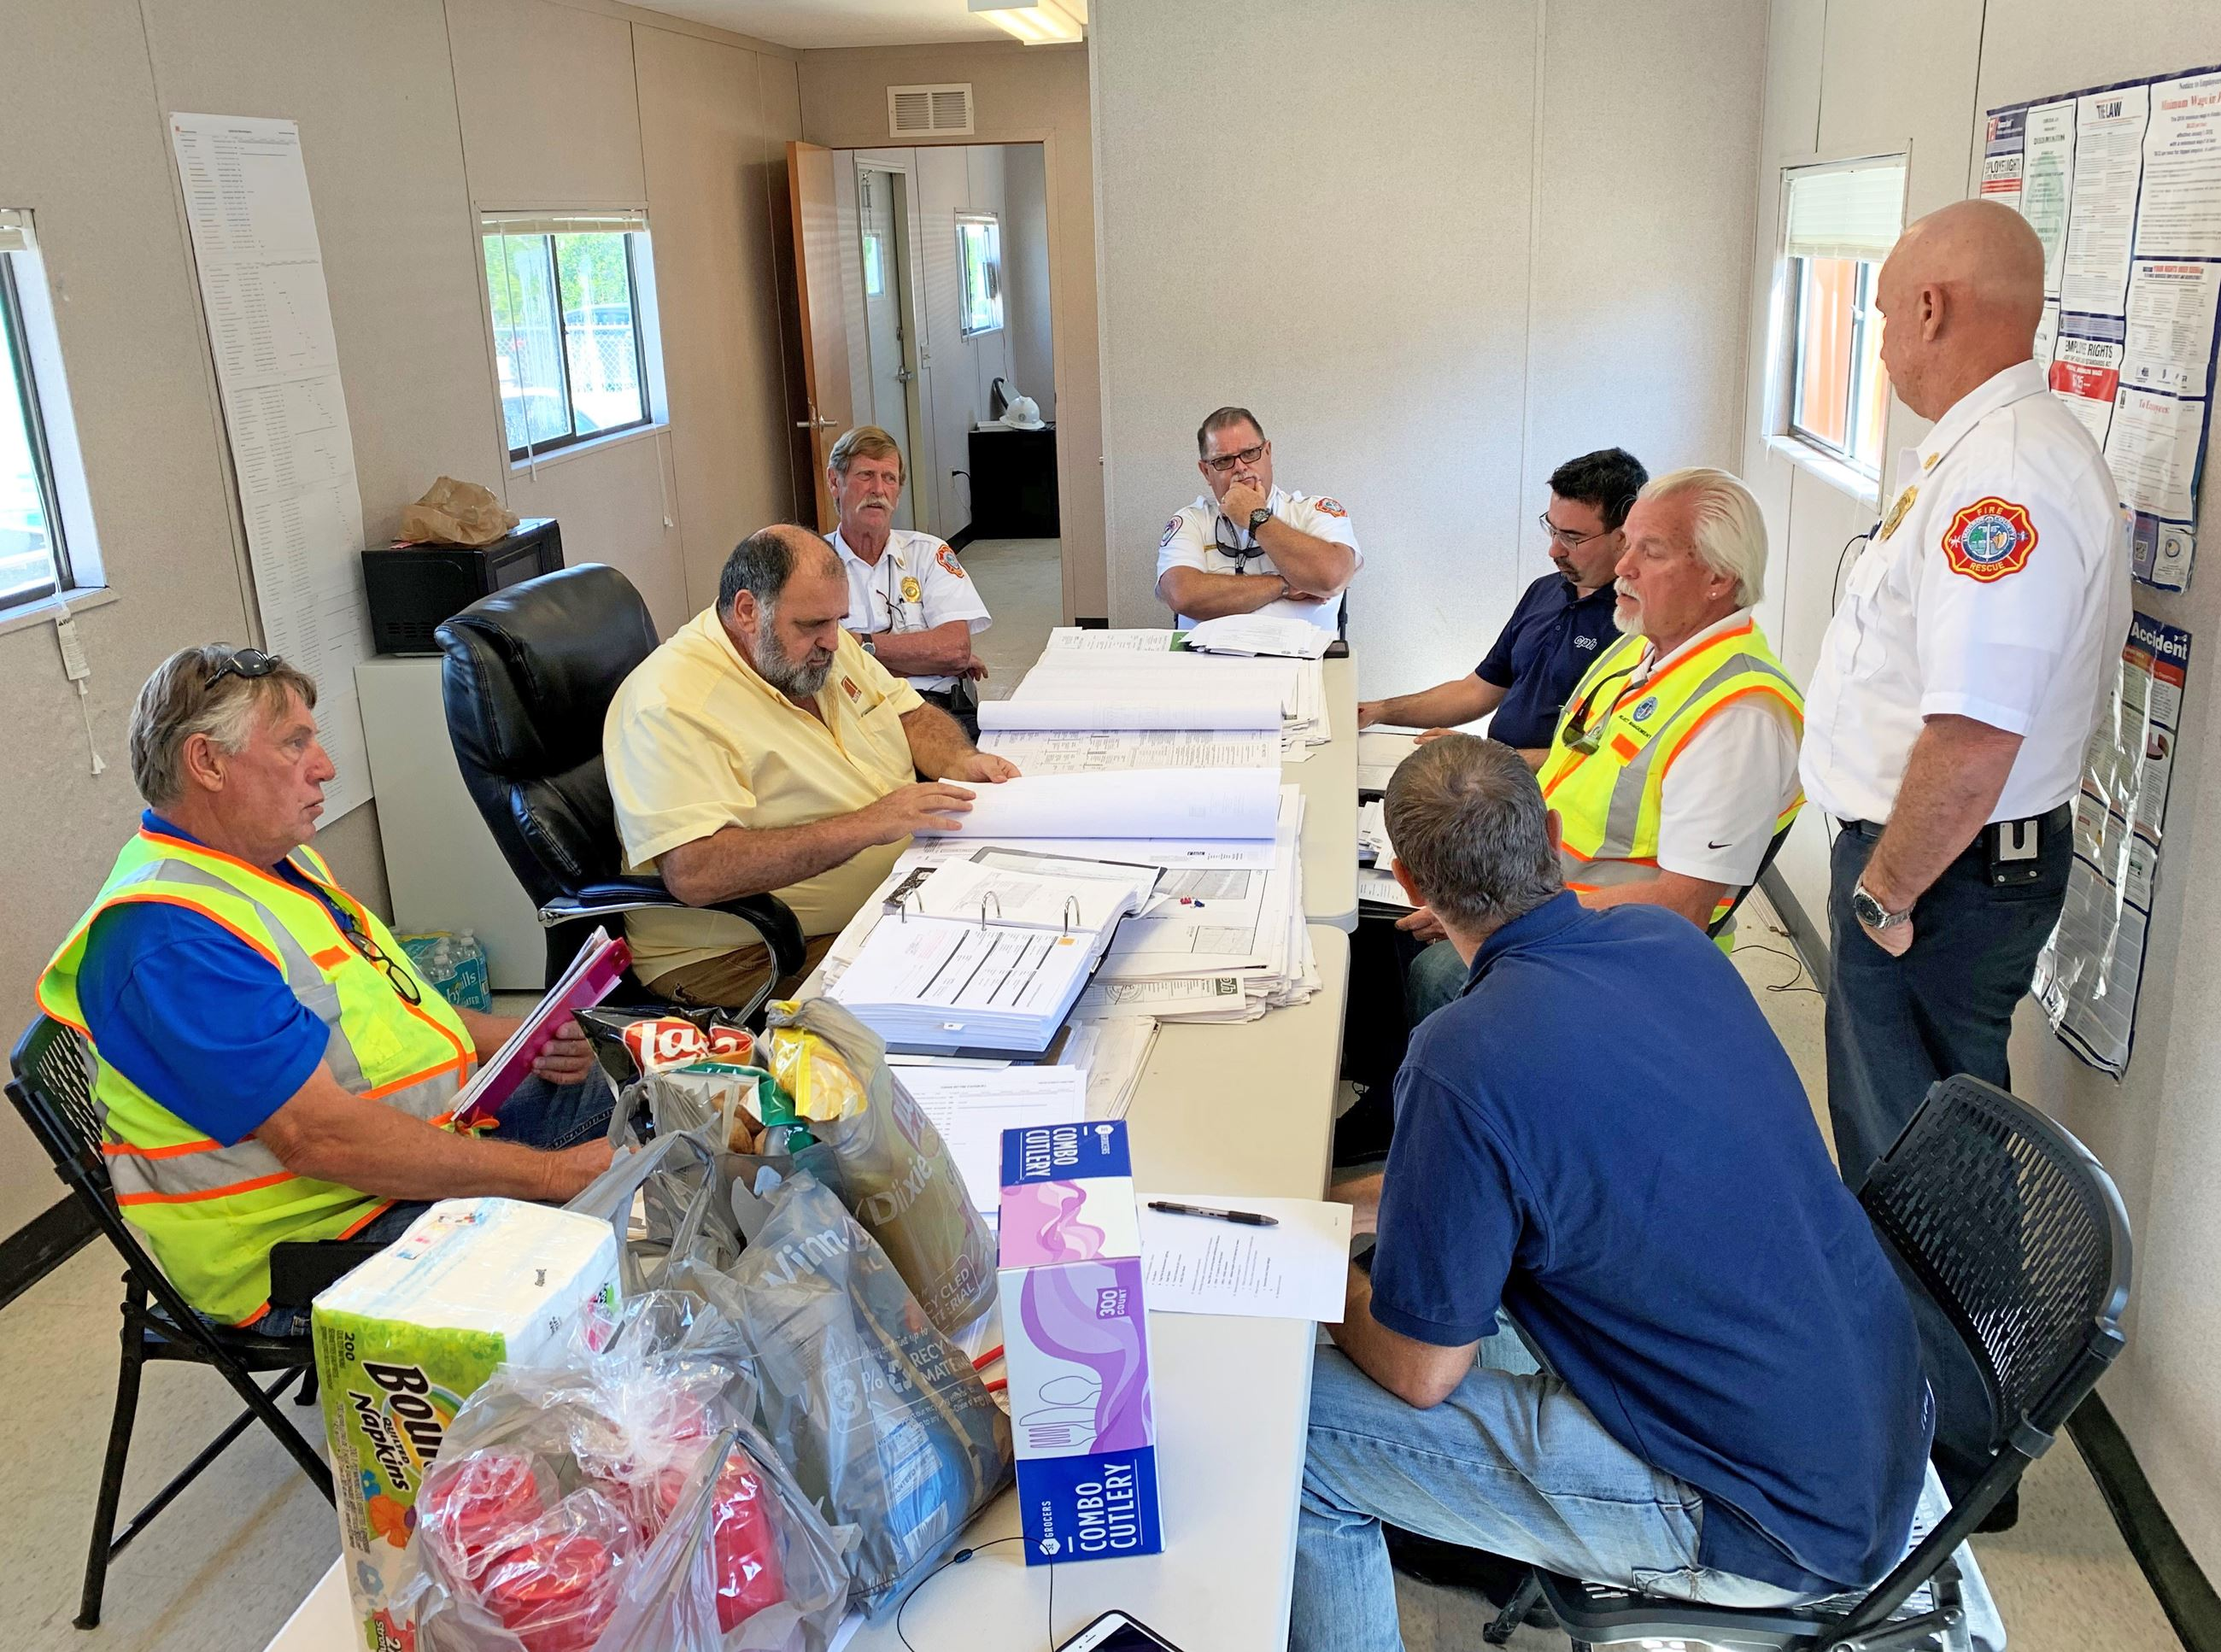 A meeting to go over plans for the Cudjoe Key fire station